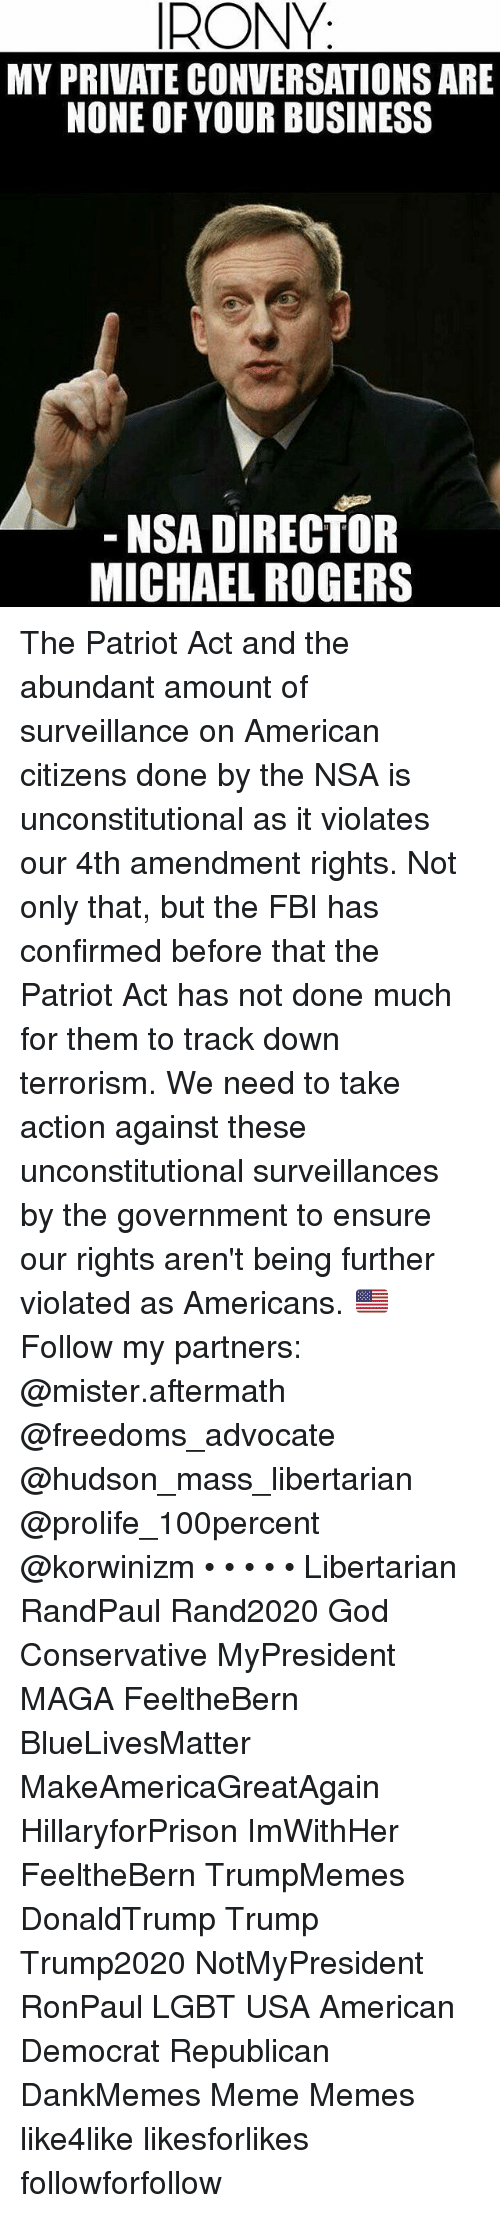 patriot muslim singles The patriot act losing liberty  no americans have faced more unjust intrusion and harassment from the patriot act than our muslim  agents single out muslim.